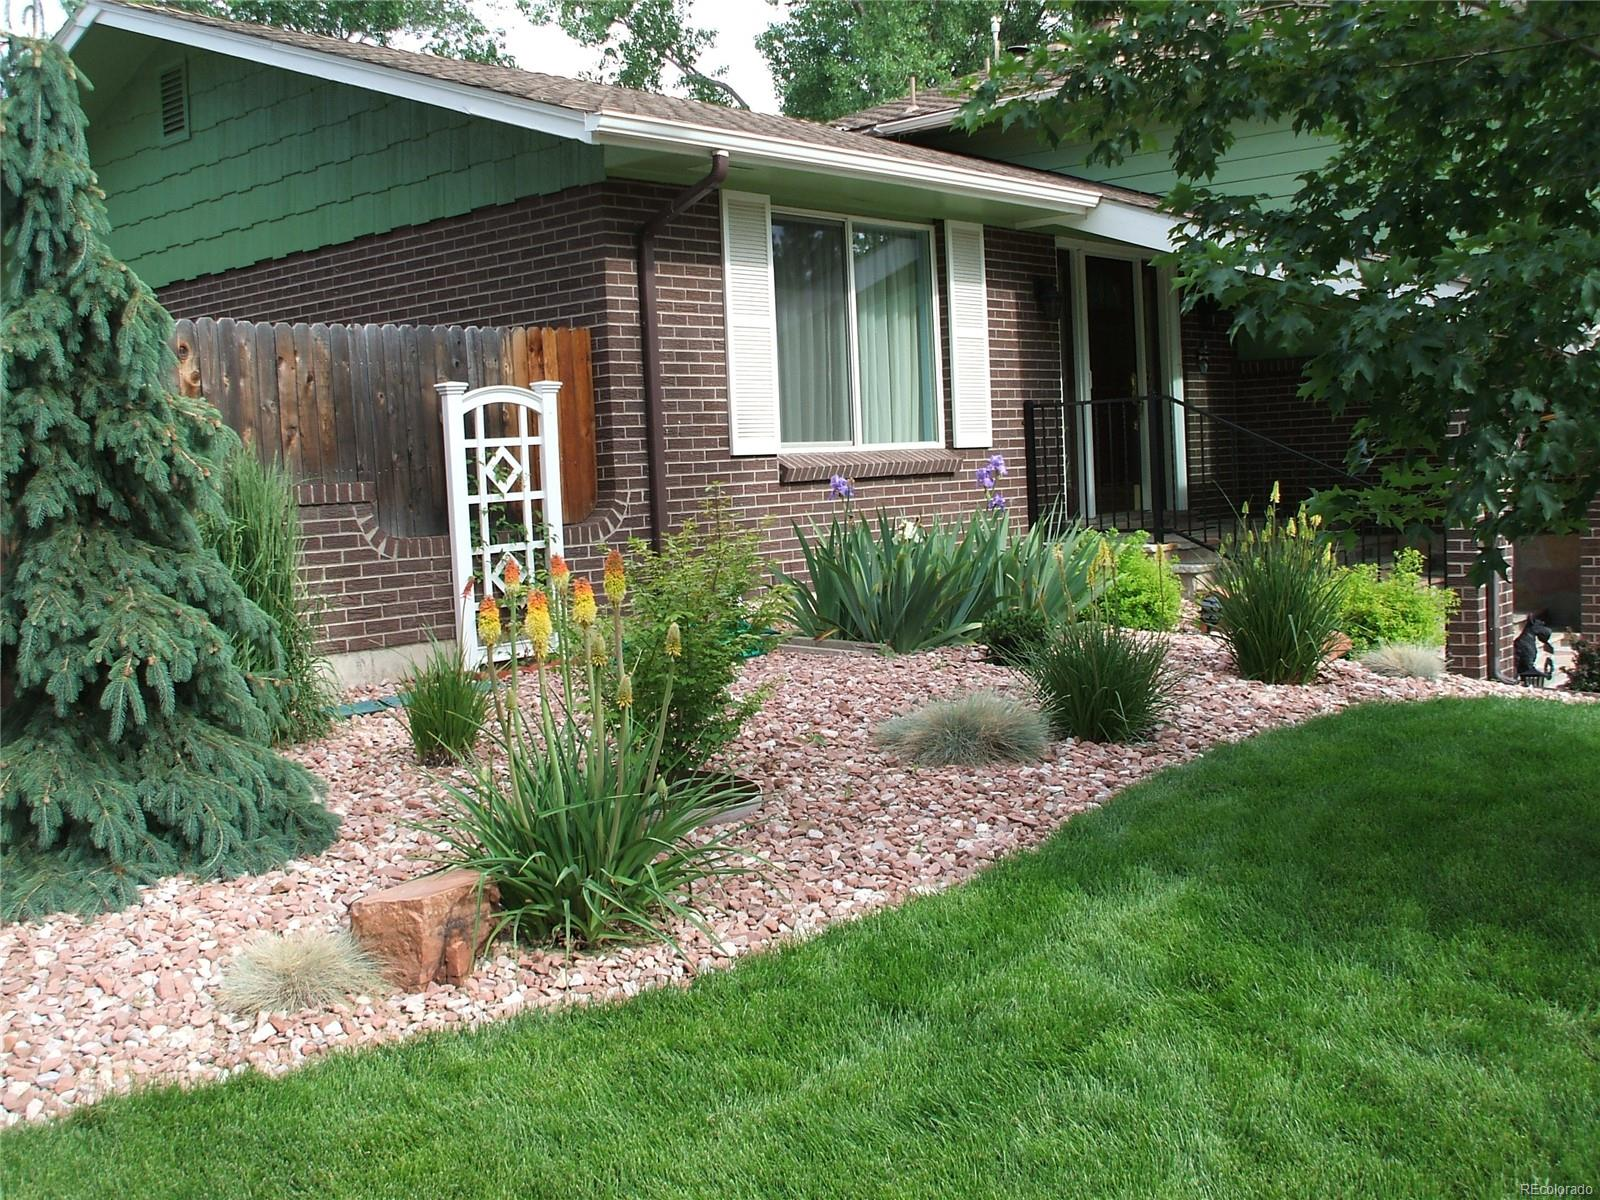 Beautifully maintained front yard landscaping